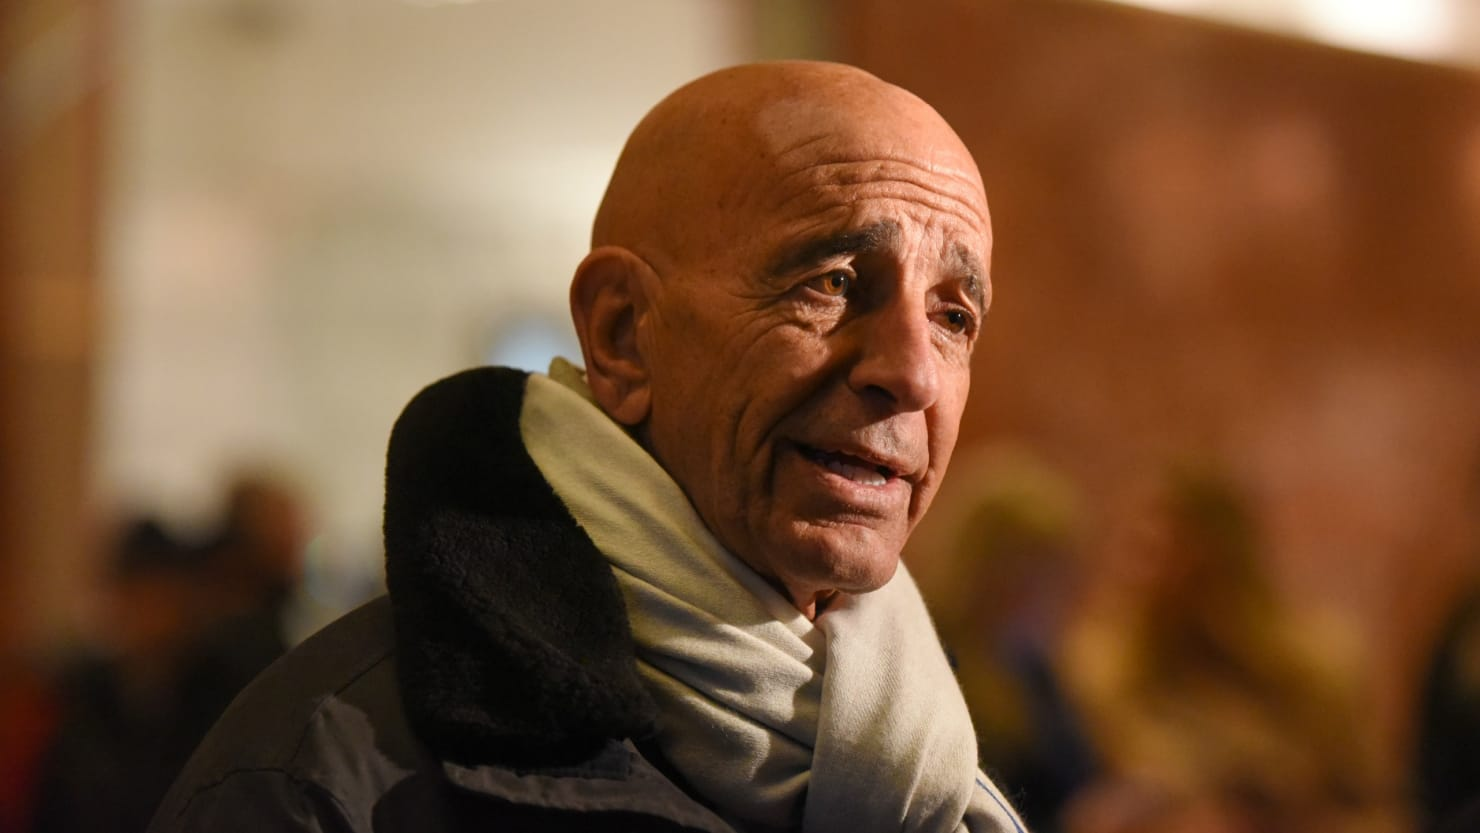 Trump friend Tom Barrack questioned by Mueller